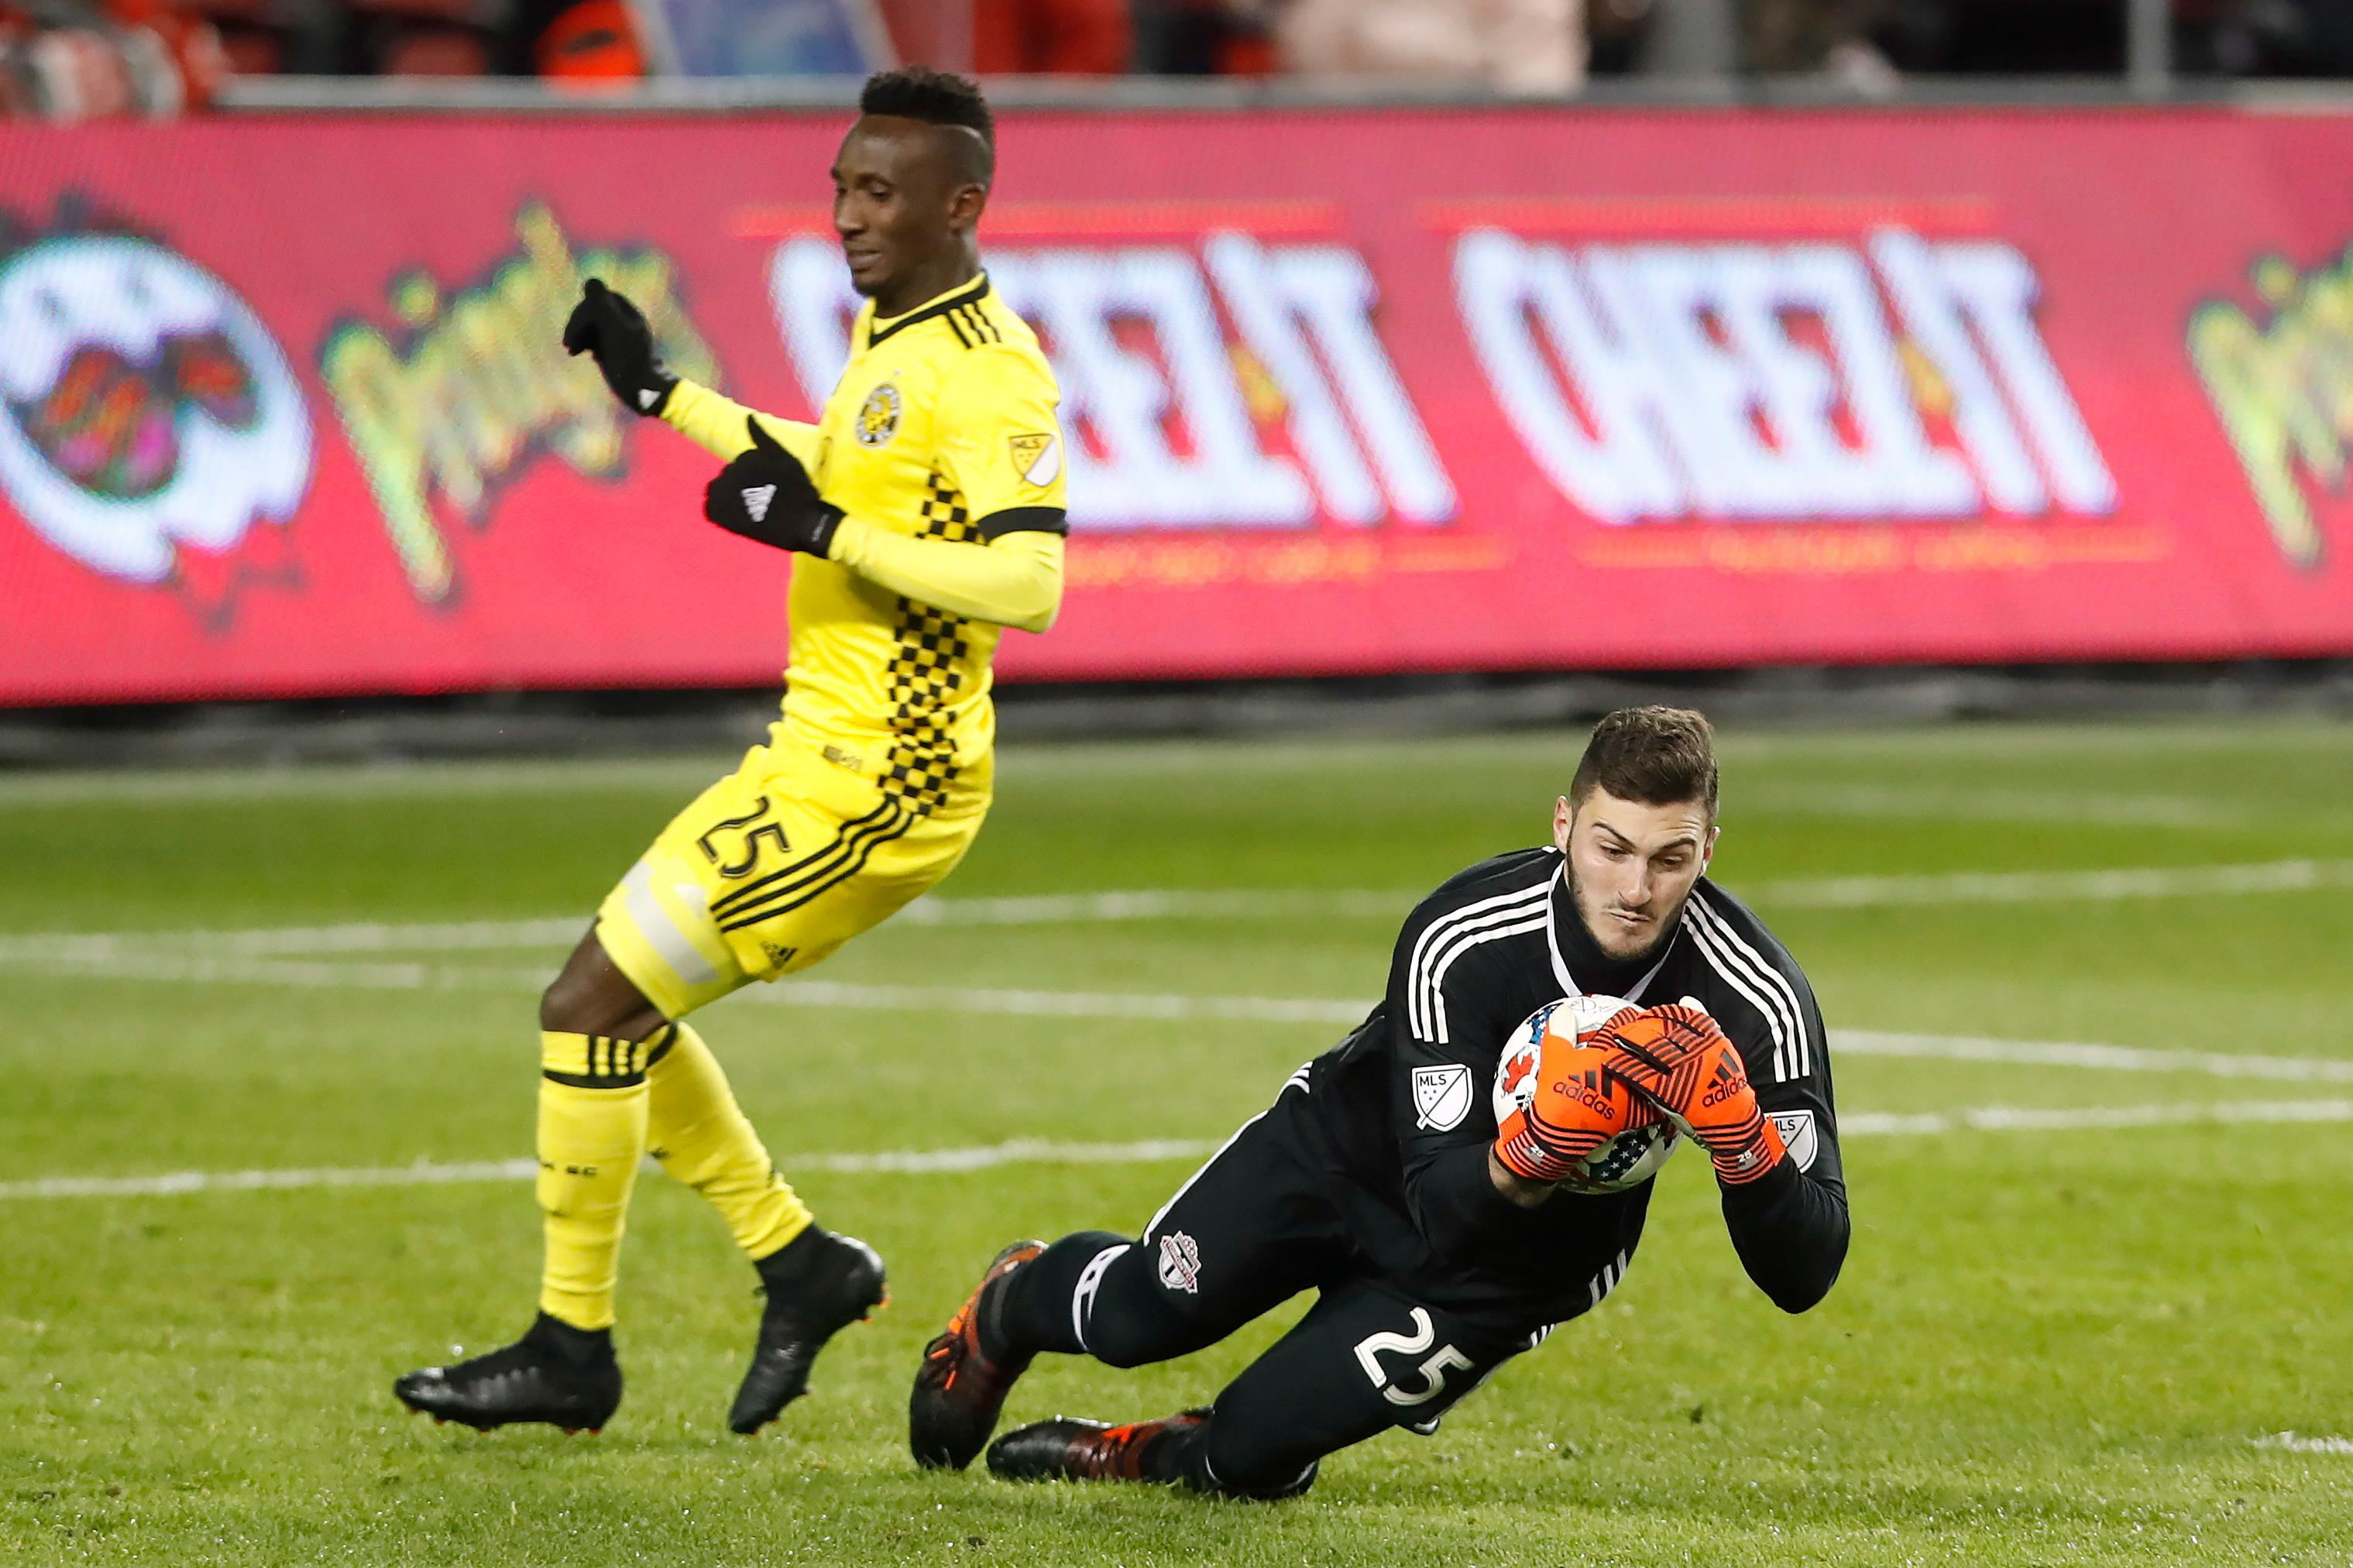 Toronto FC goalkeeper Alex Bono (25) makes a save in front of Columbus Crew defender Harrison Afful (25) during the second half of an Eastern Conference MLS final playoff soccer game, Wednesday, Nov. 29, 2017 in Toronto. (Mark Blinch/The Canadian Press via AP)